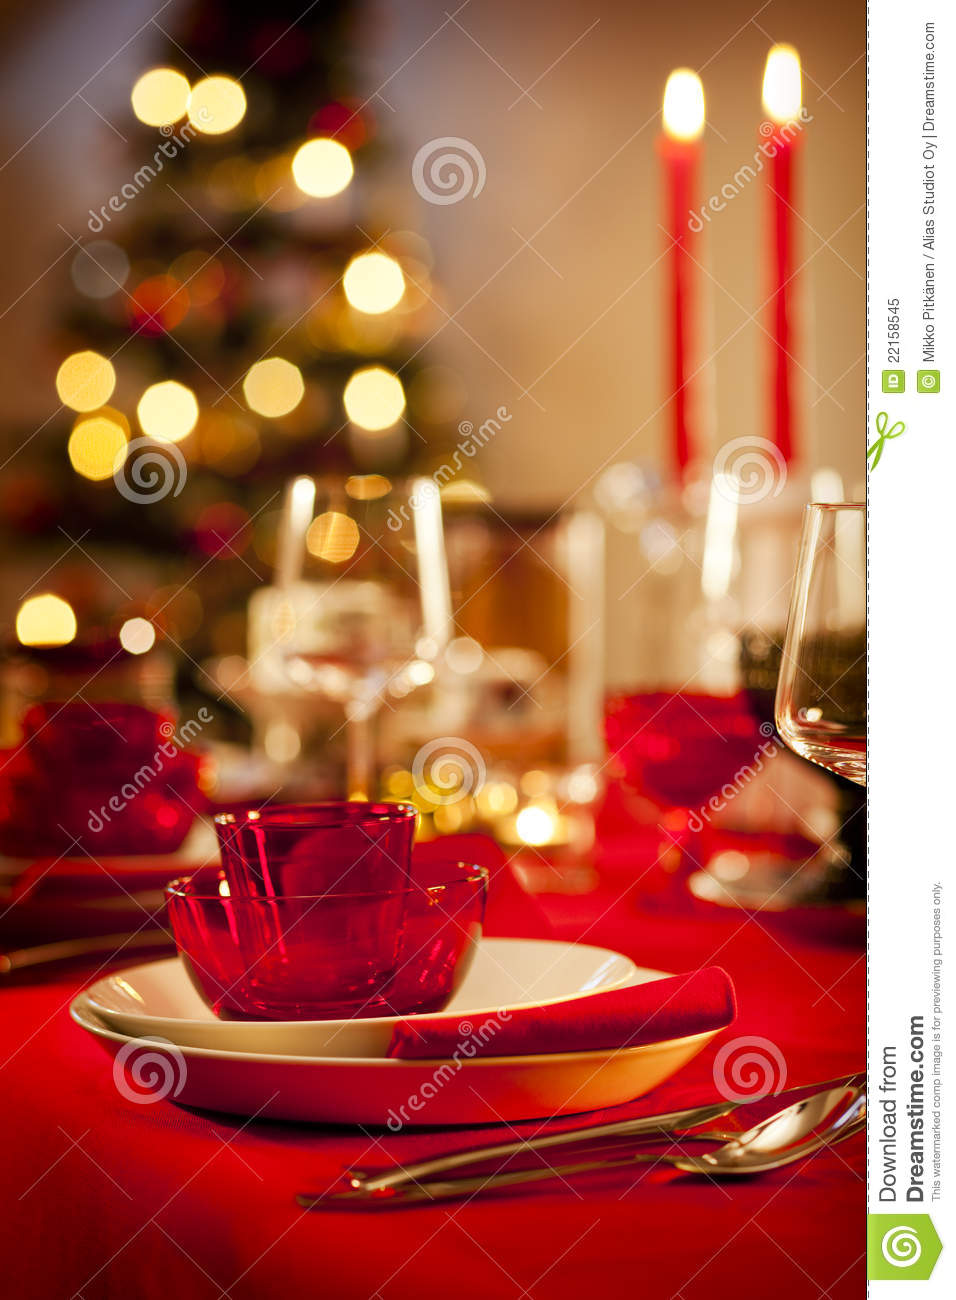 Christmas Dinner Table Pictures Wallpapers